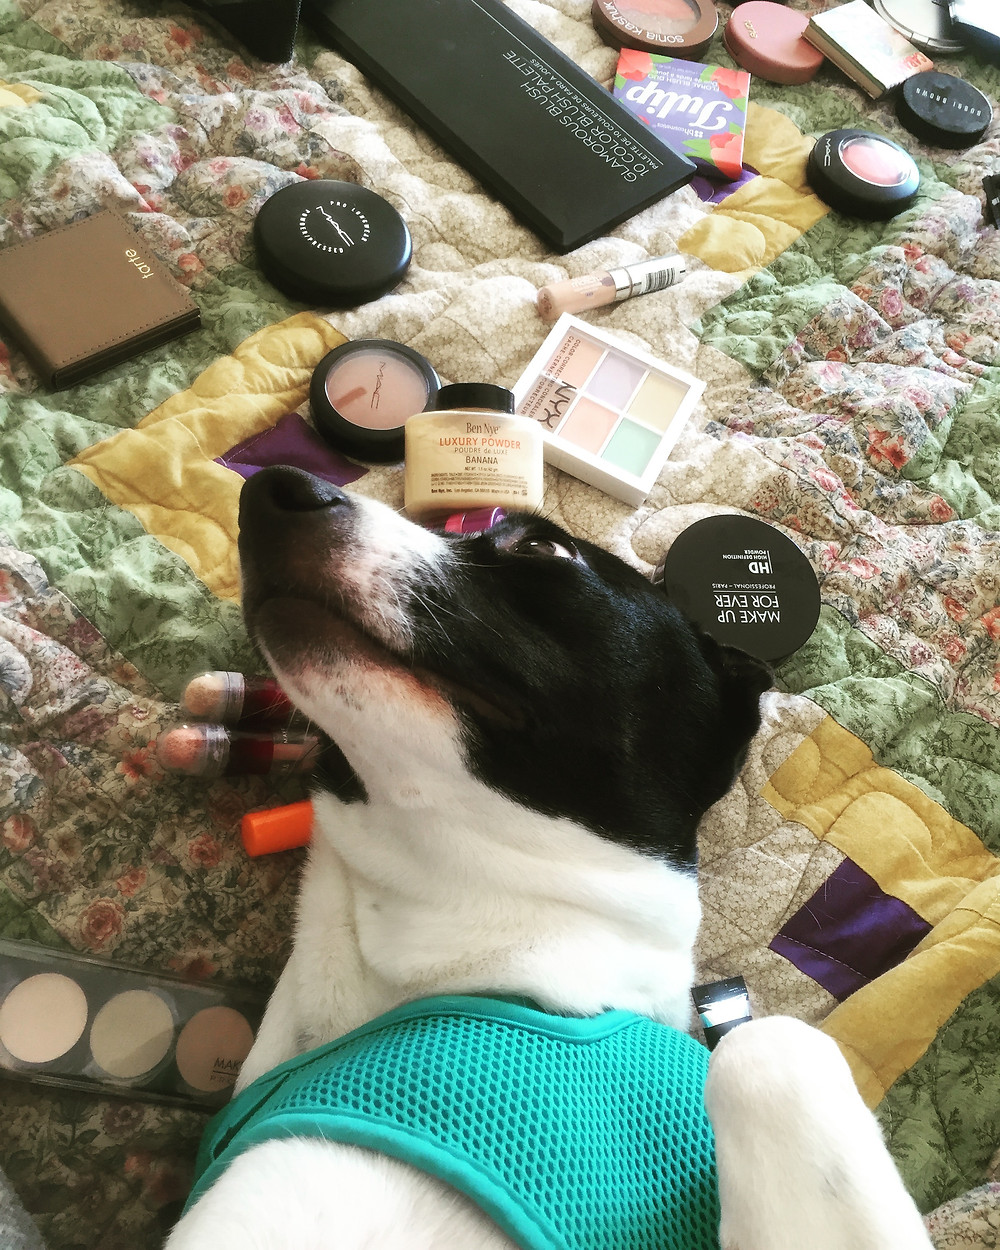 contour how to full coverage makeup how to everyday makeup look smokey eye look highlight foundation brows brow wiz youthful how to makeup tutorials